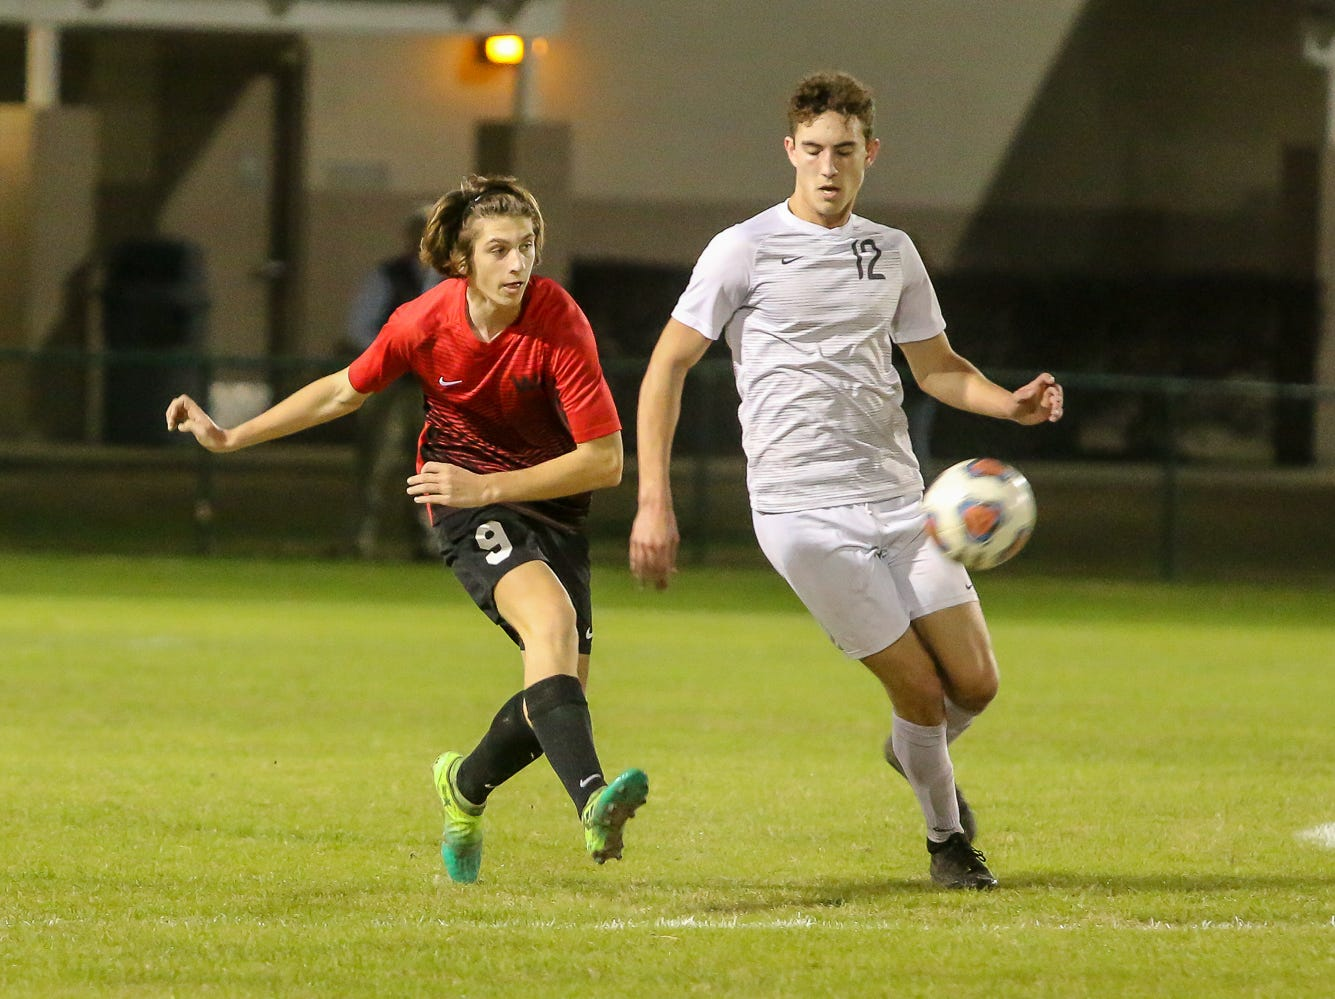 West Florida's Quinn Baker (9) passes the ball away from Mosley's Nick French (12) in the Region 1-3A quarterfinal game at Ashton Brosnaham Park on Wednesday, February 6, 2019. Mosley beat West Florida 2-1 and advances to the next round.